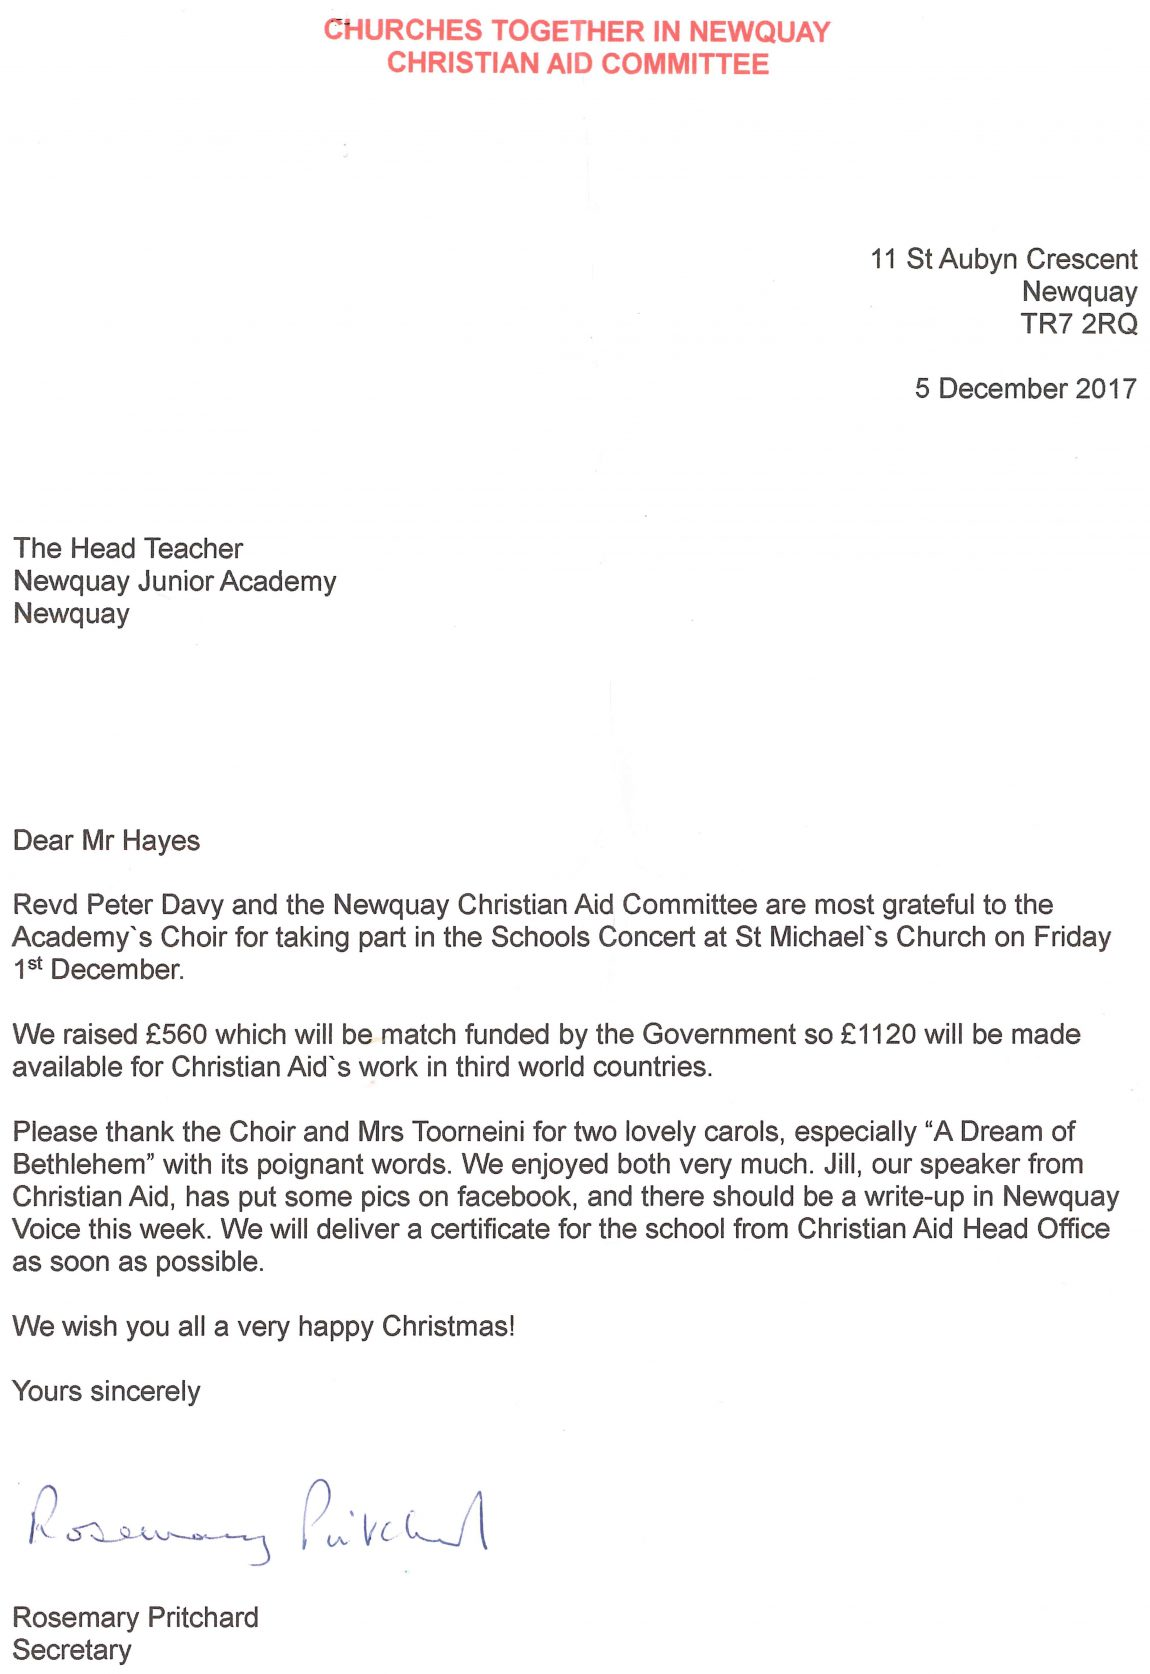 Newquay Christian Aid Letter Cropped Newquay Junior Academy